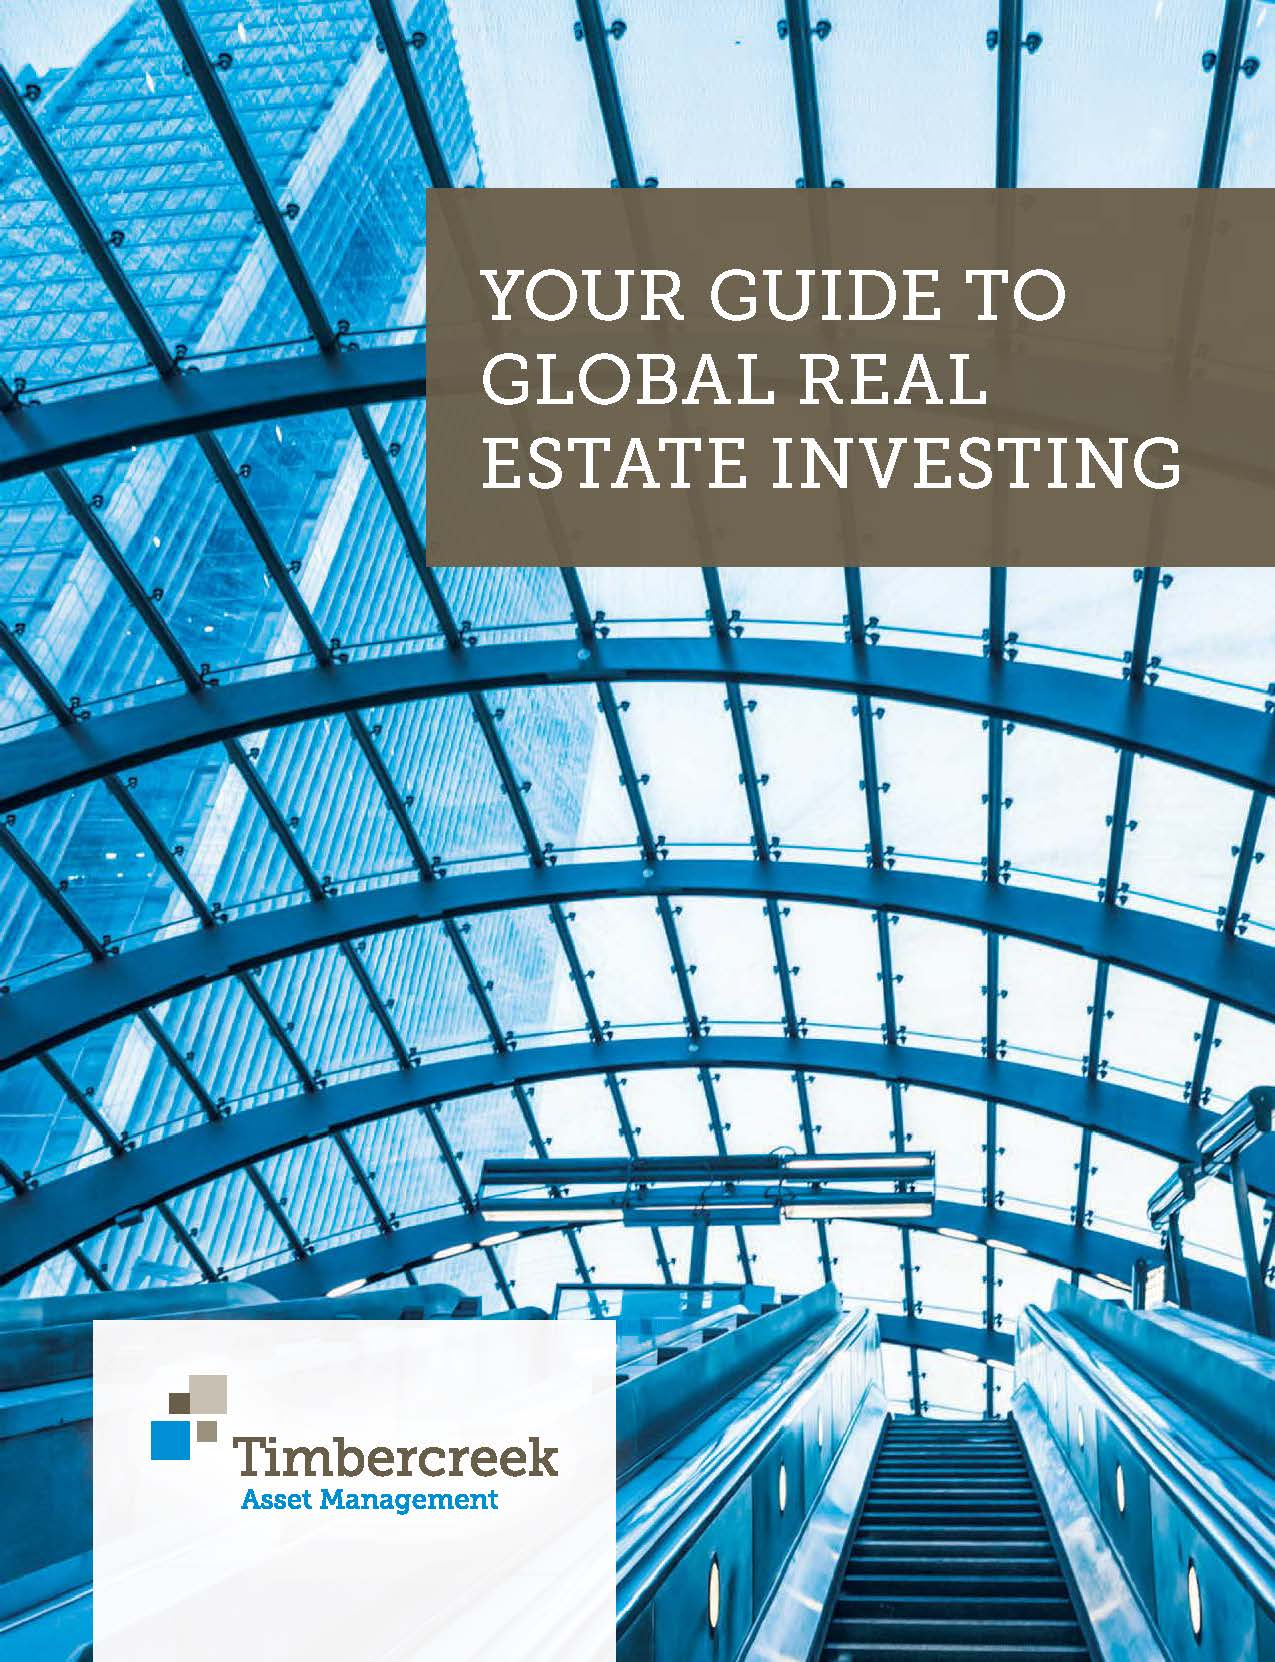 Your Guide to Global Real Estate Investing-jpeg